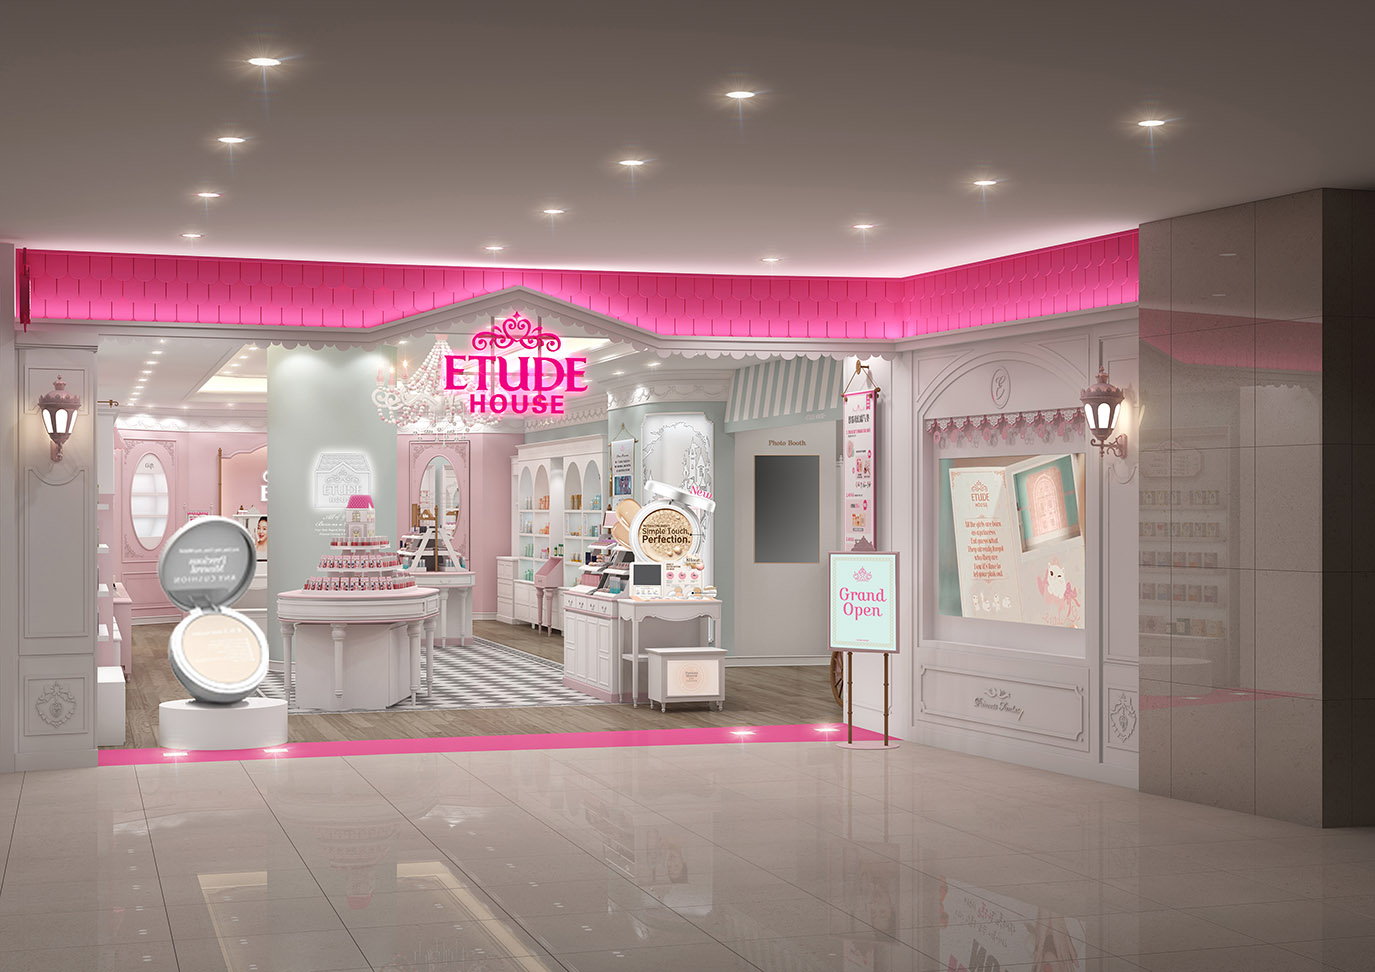 etude house Find great deals on ebay for etude house in health and beauty products shop with confidence.